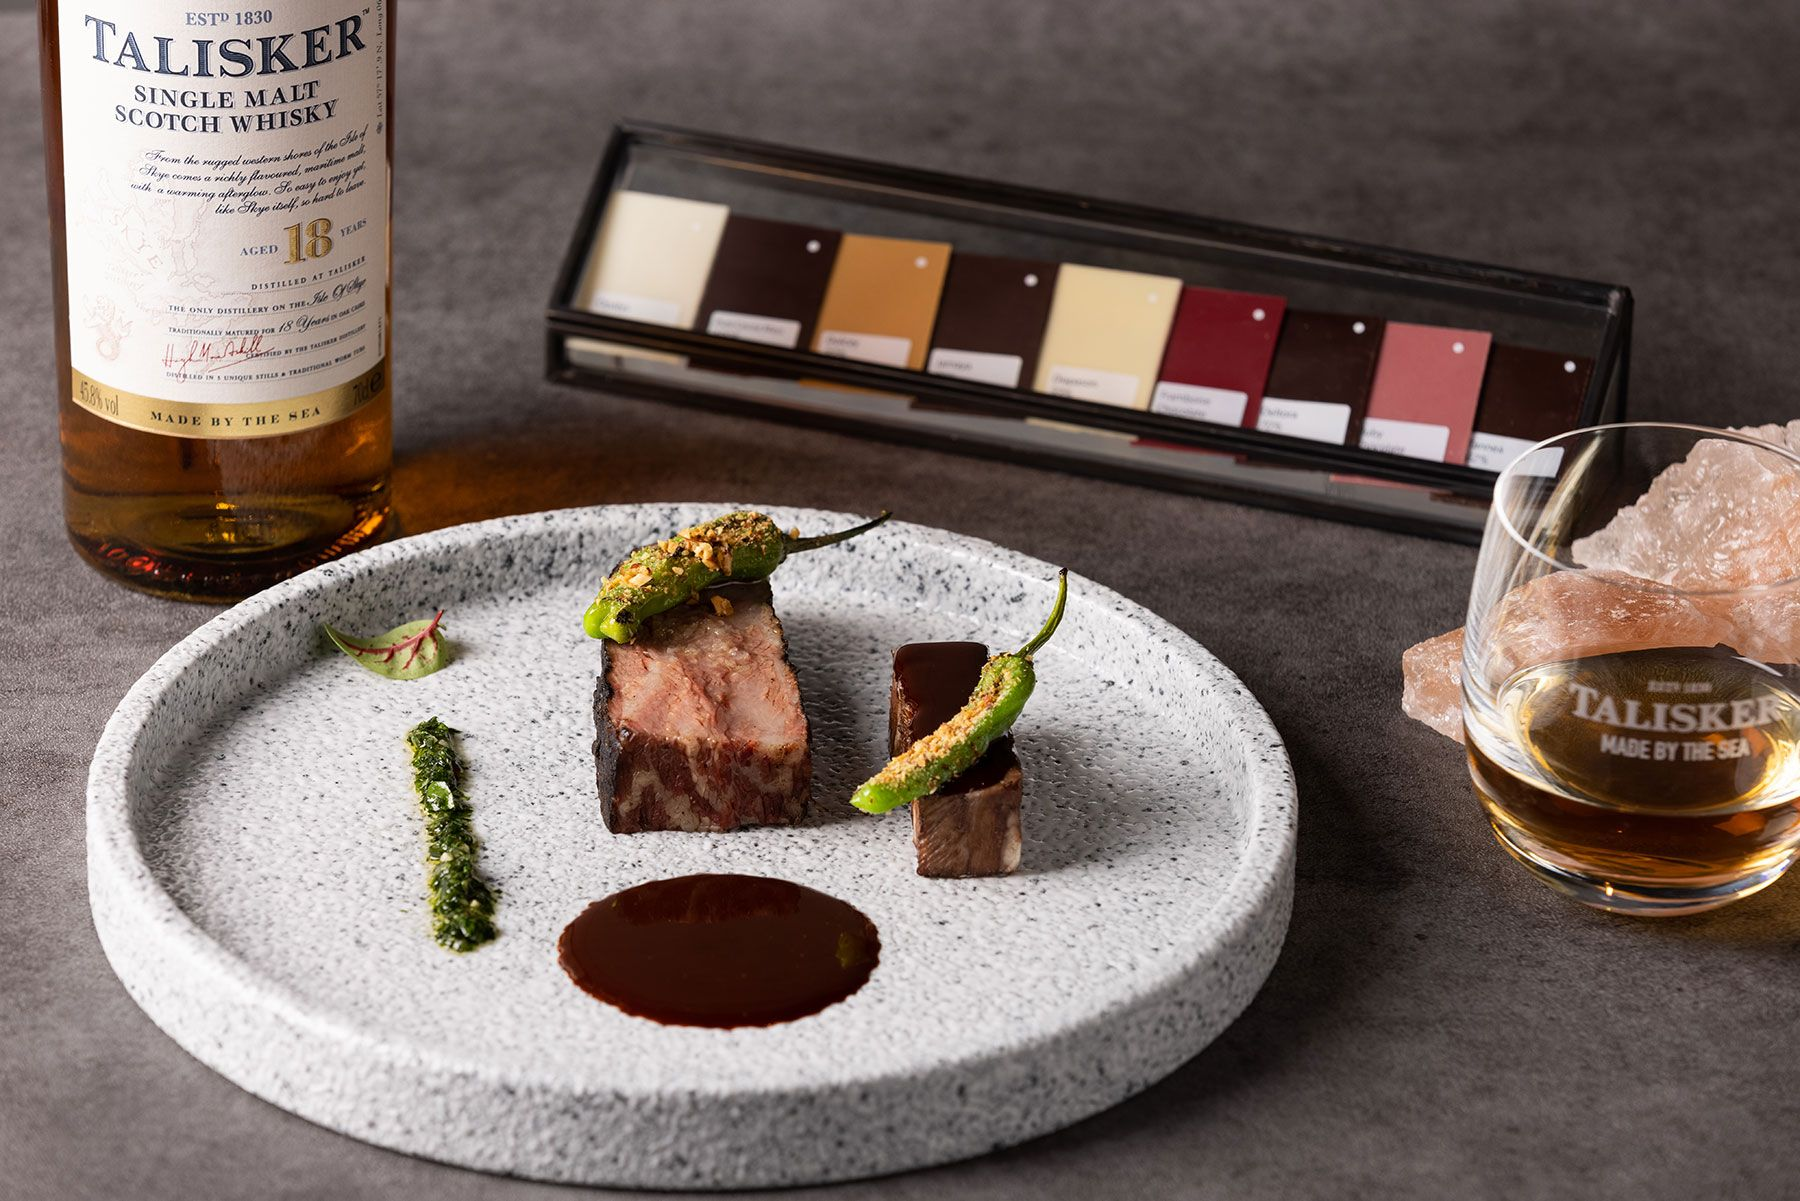 Hong Kong Restaurant News: Mian Opens At The Murray, Cobo House Pairs Whisky With Chocolate, And More